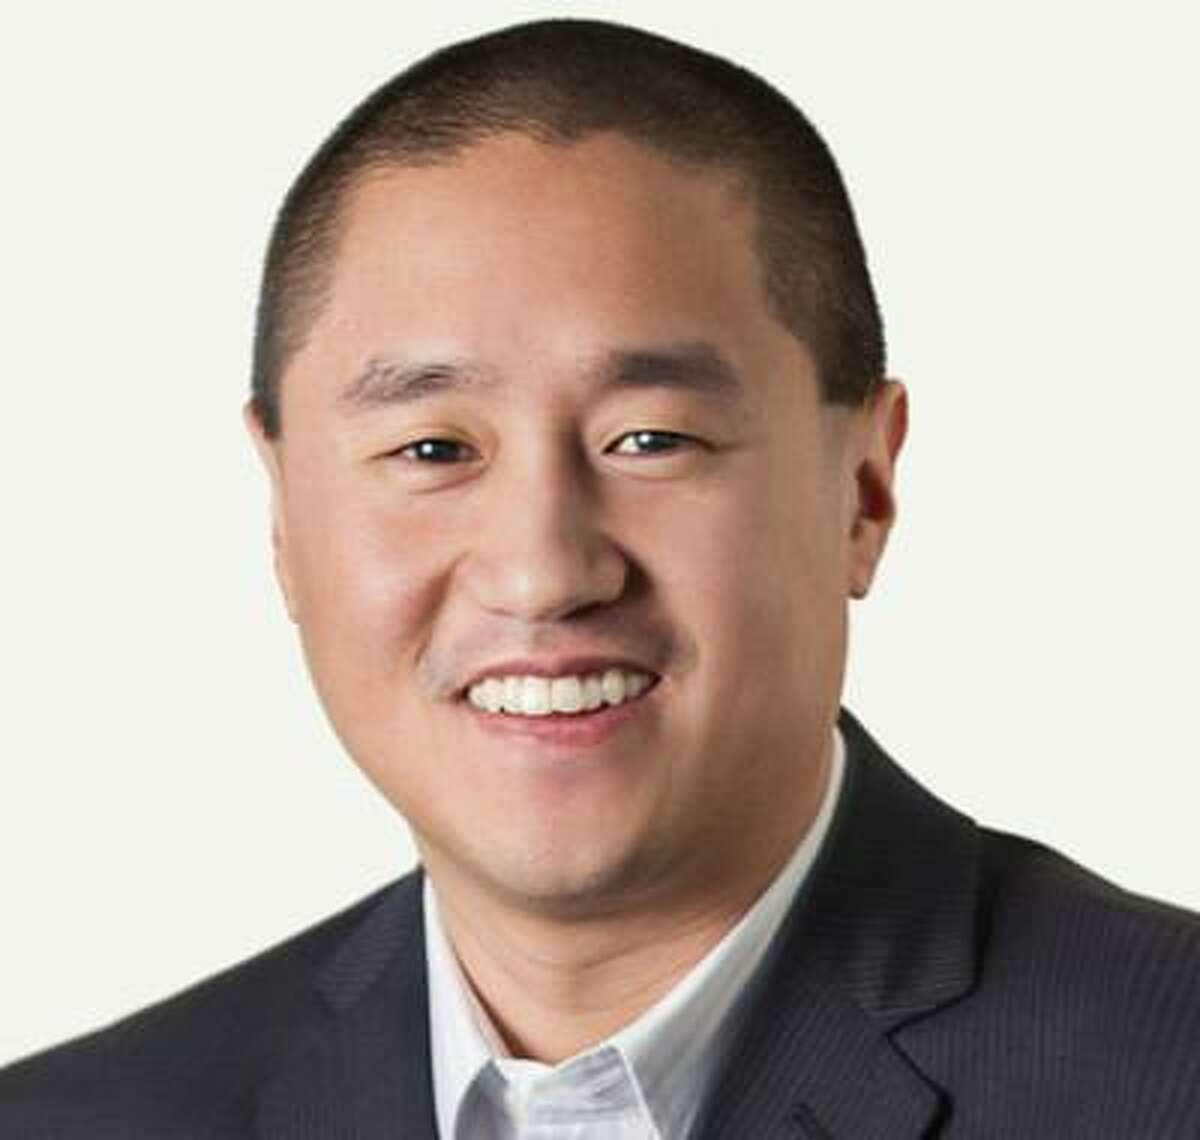 Ted Yang is the co-founder and former CEO of the nonprofit 4-CT, which was founded on March 15, 2020.